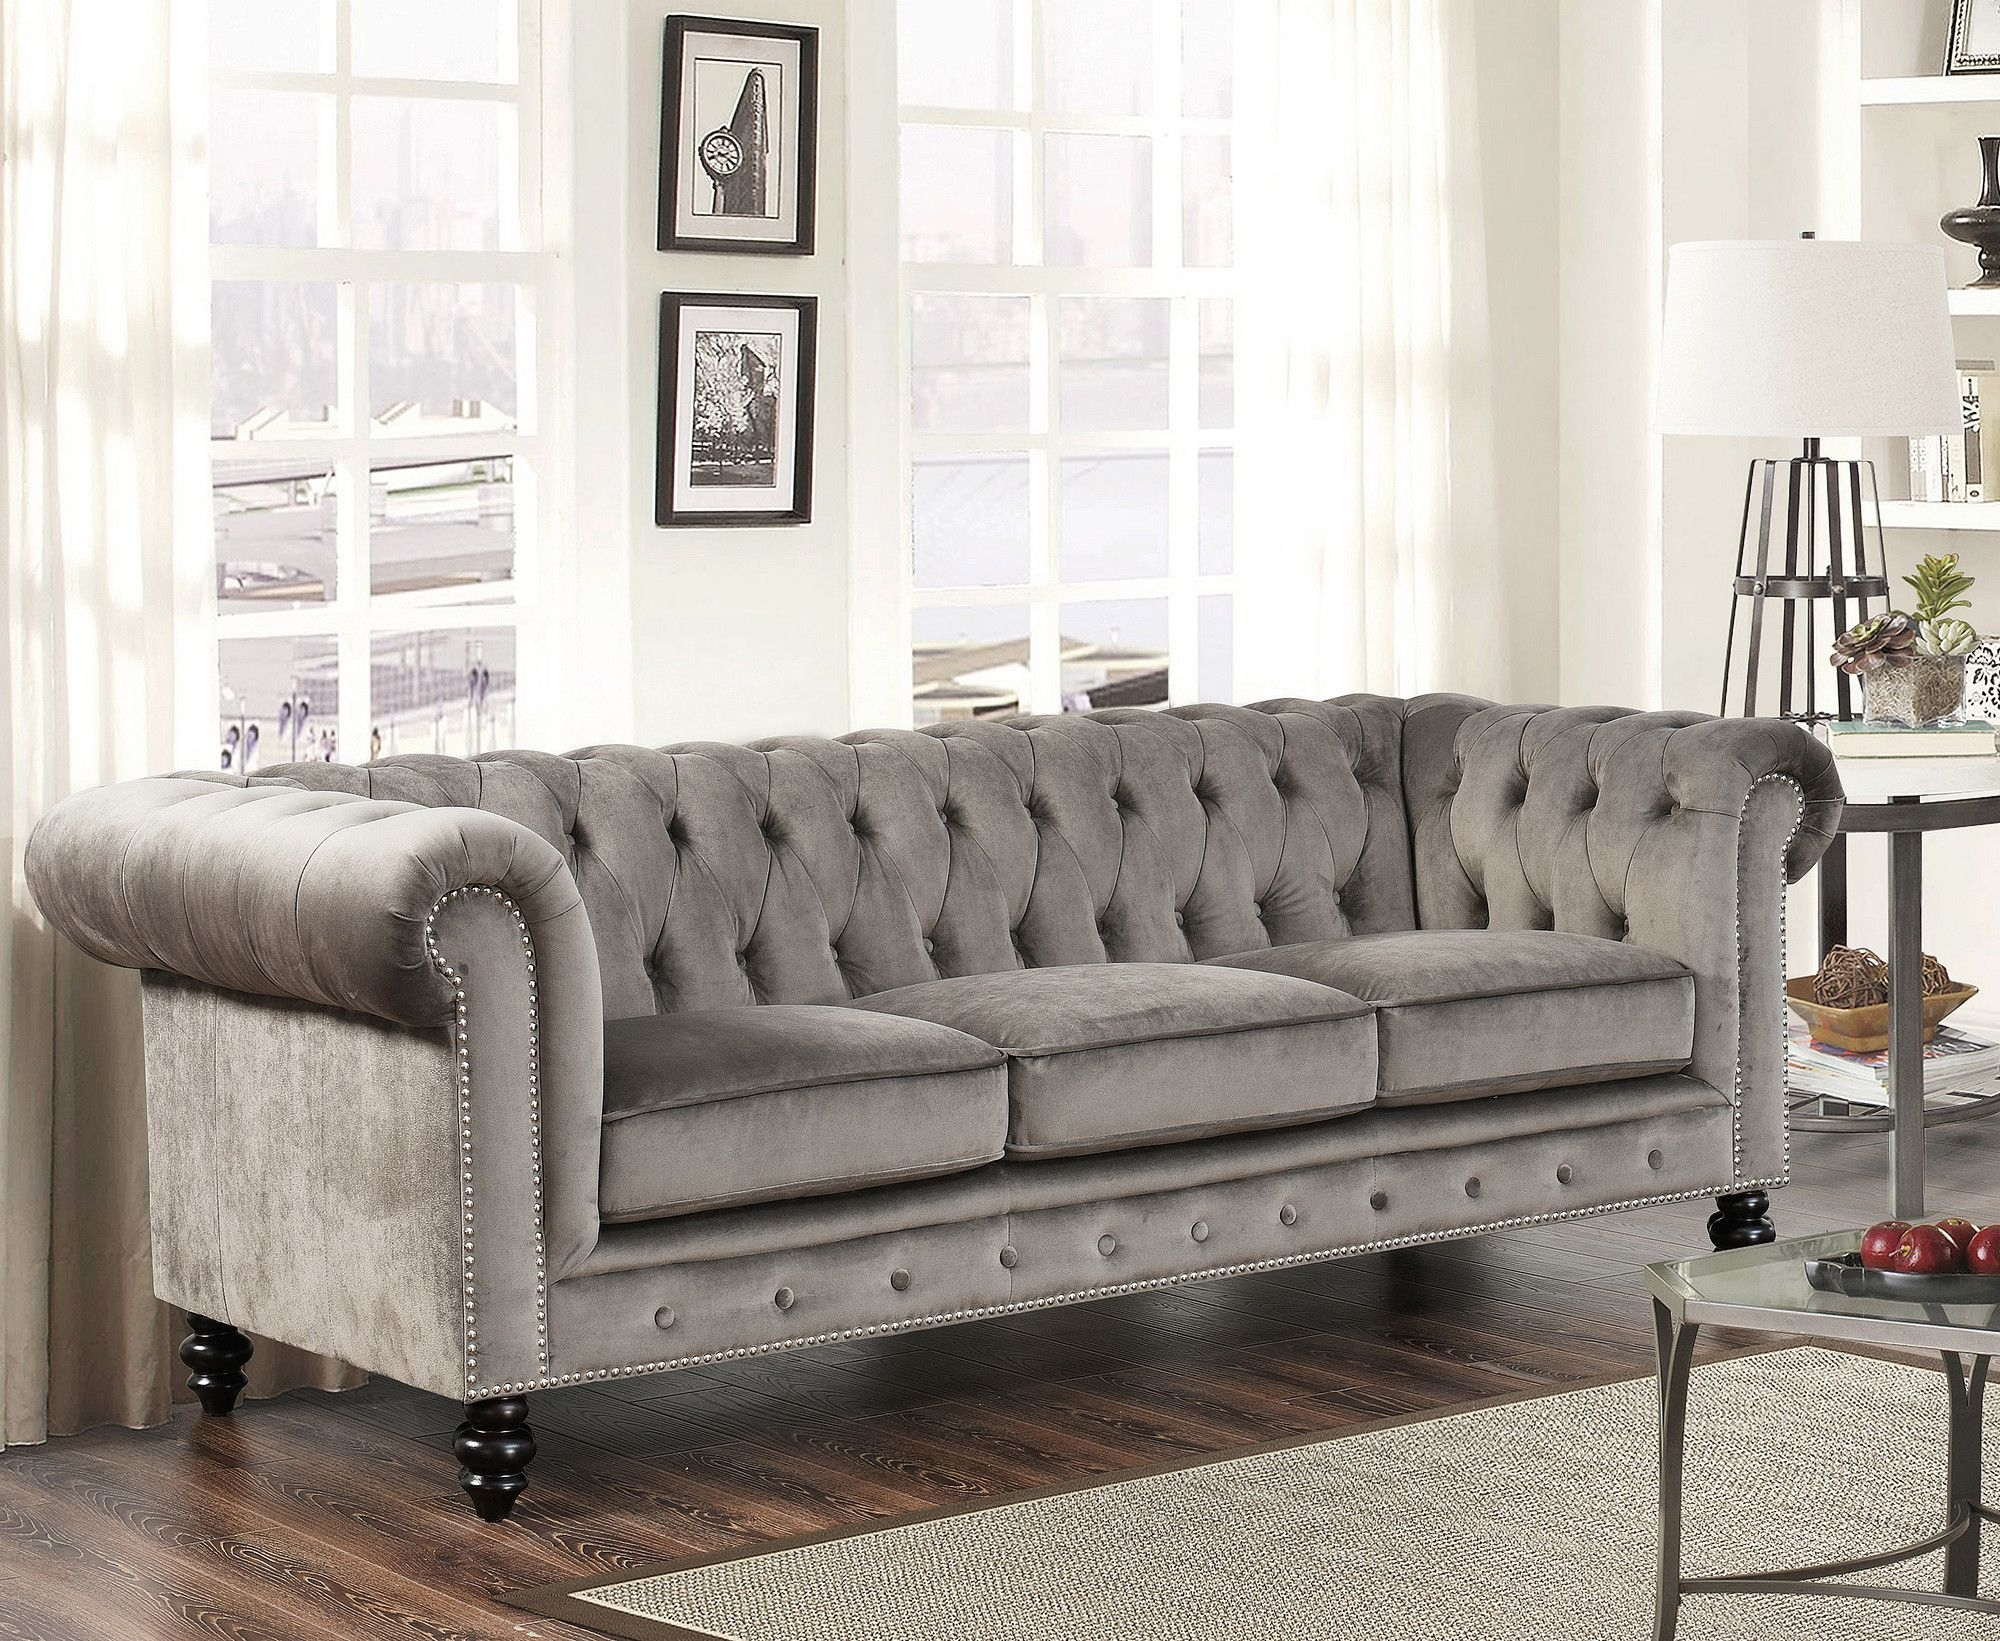 furniture seater rightchaise beige zuri sofa greyblack sectional living savoy gray black